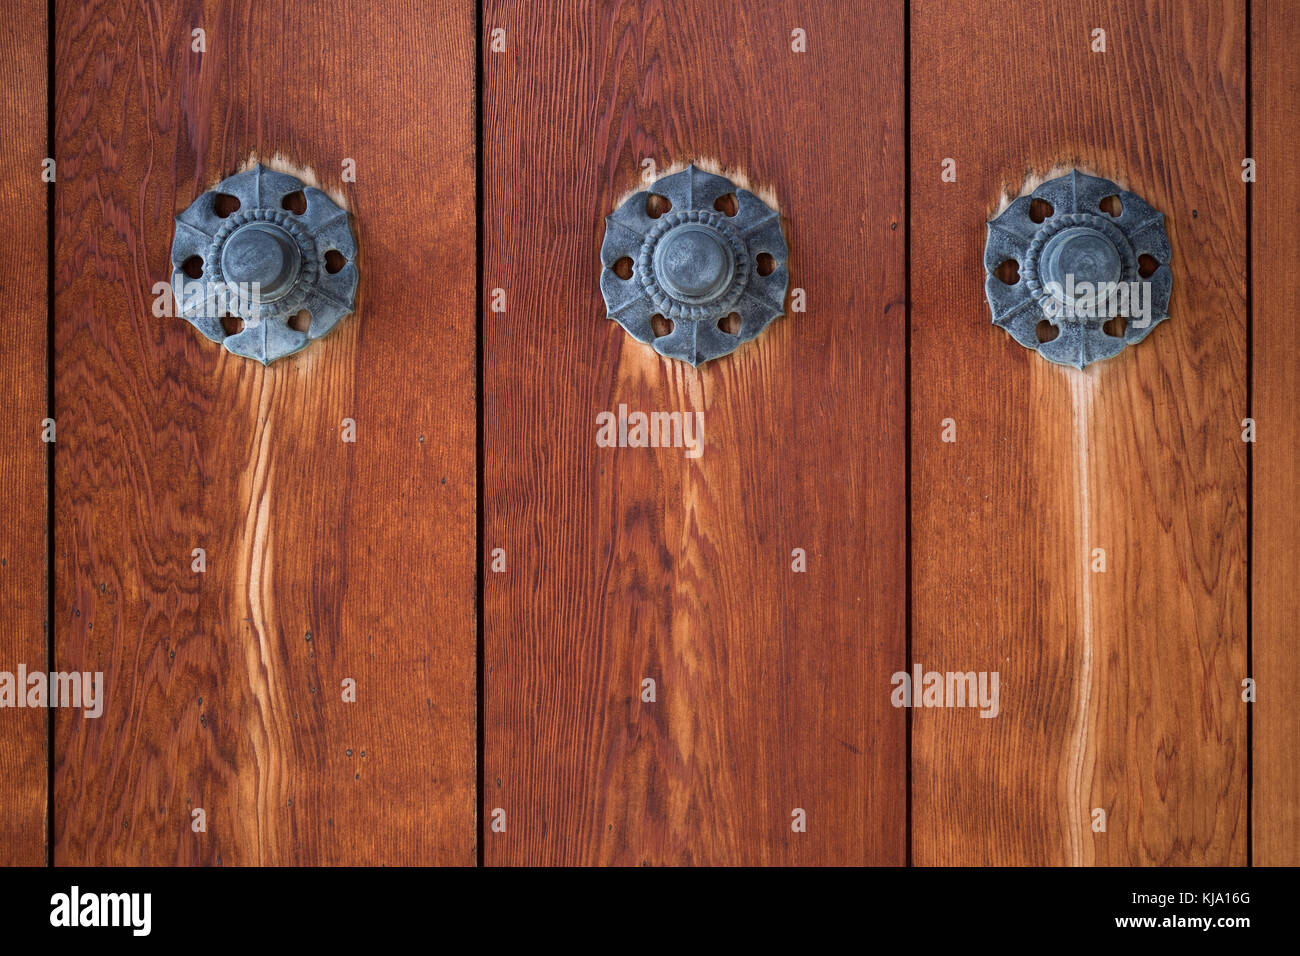 Metal ornaments on an old weathered wooden door - Stock Image & Metal Ornaments Stock Photos u0026 Metal Ornaments Stock Images - Alamy